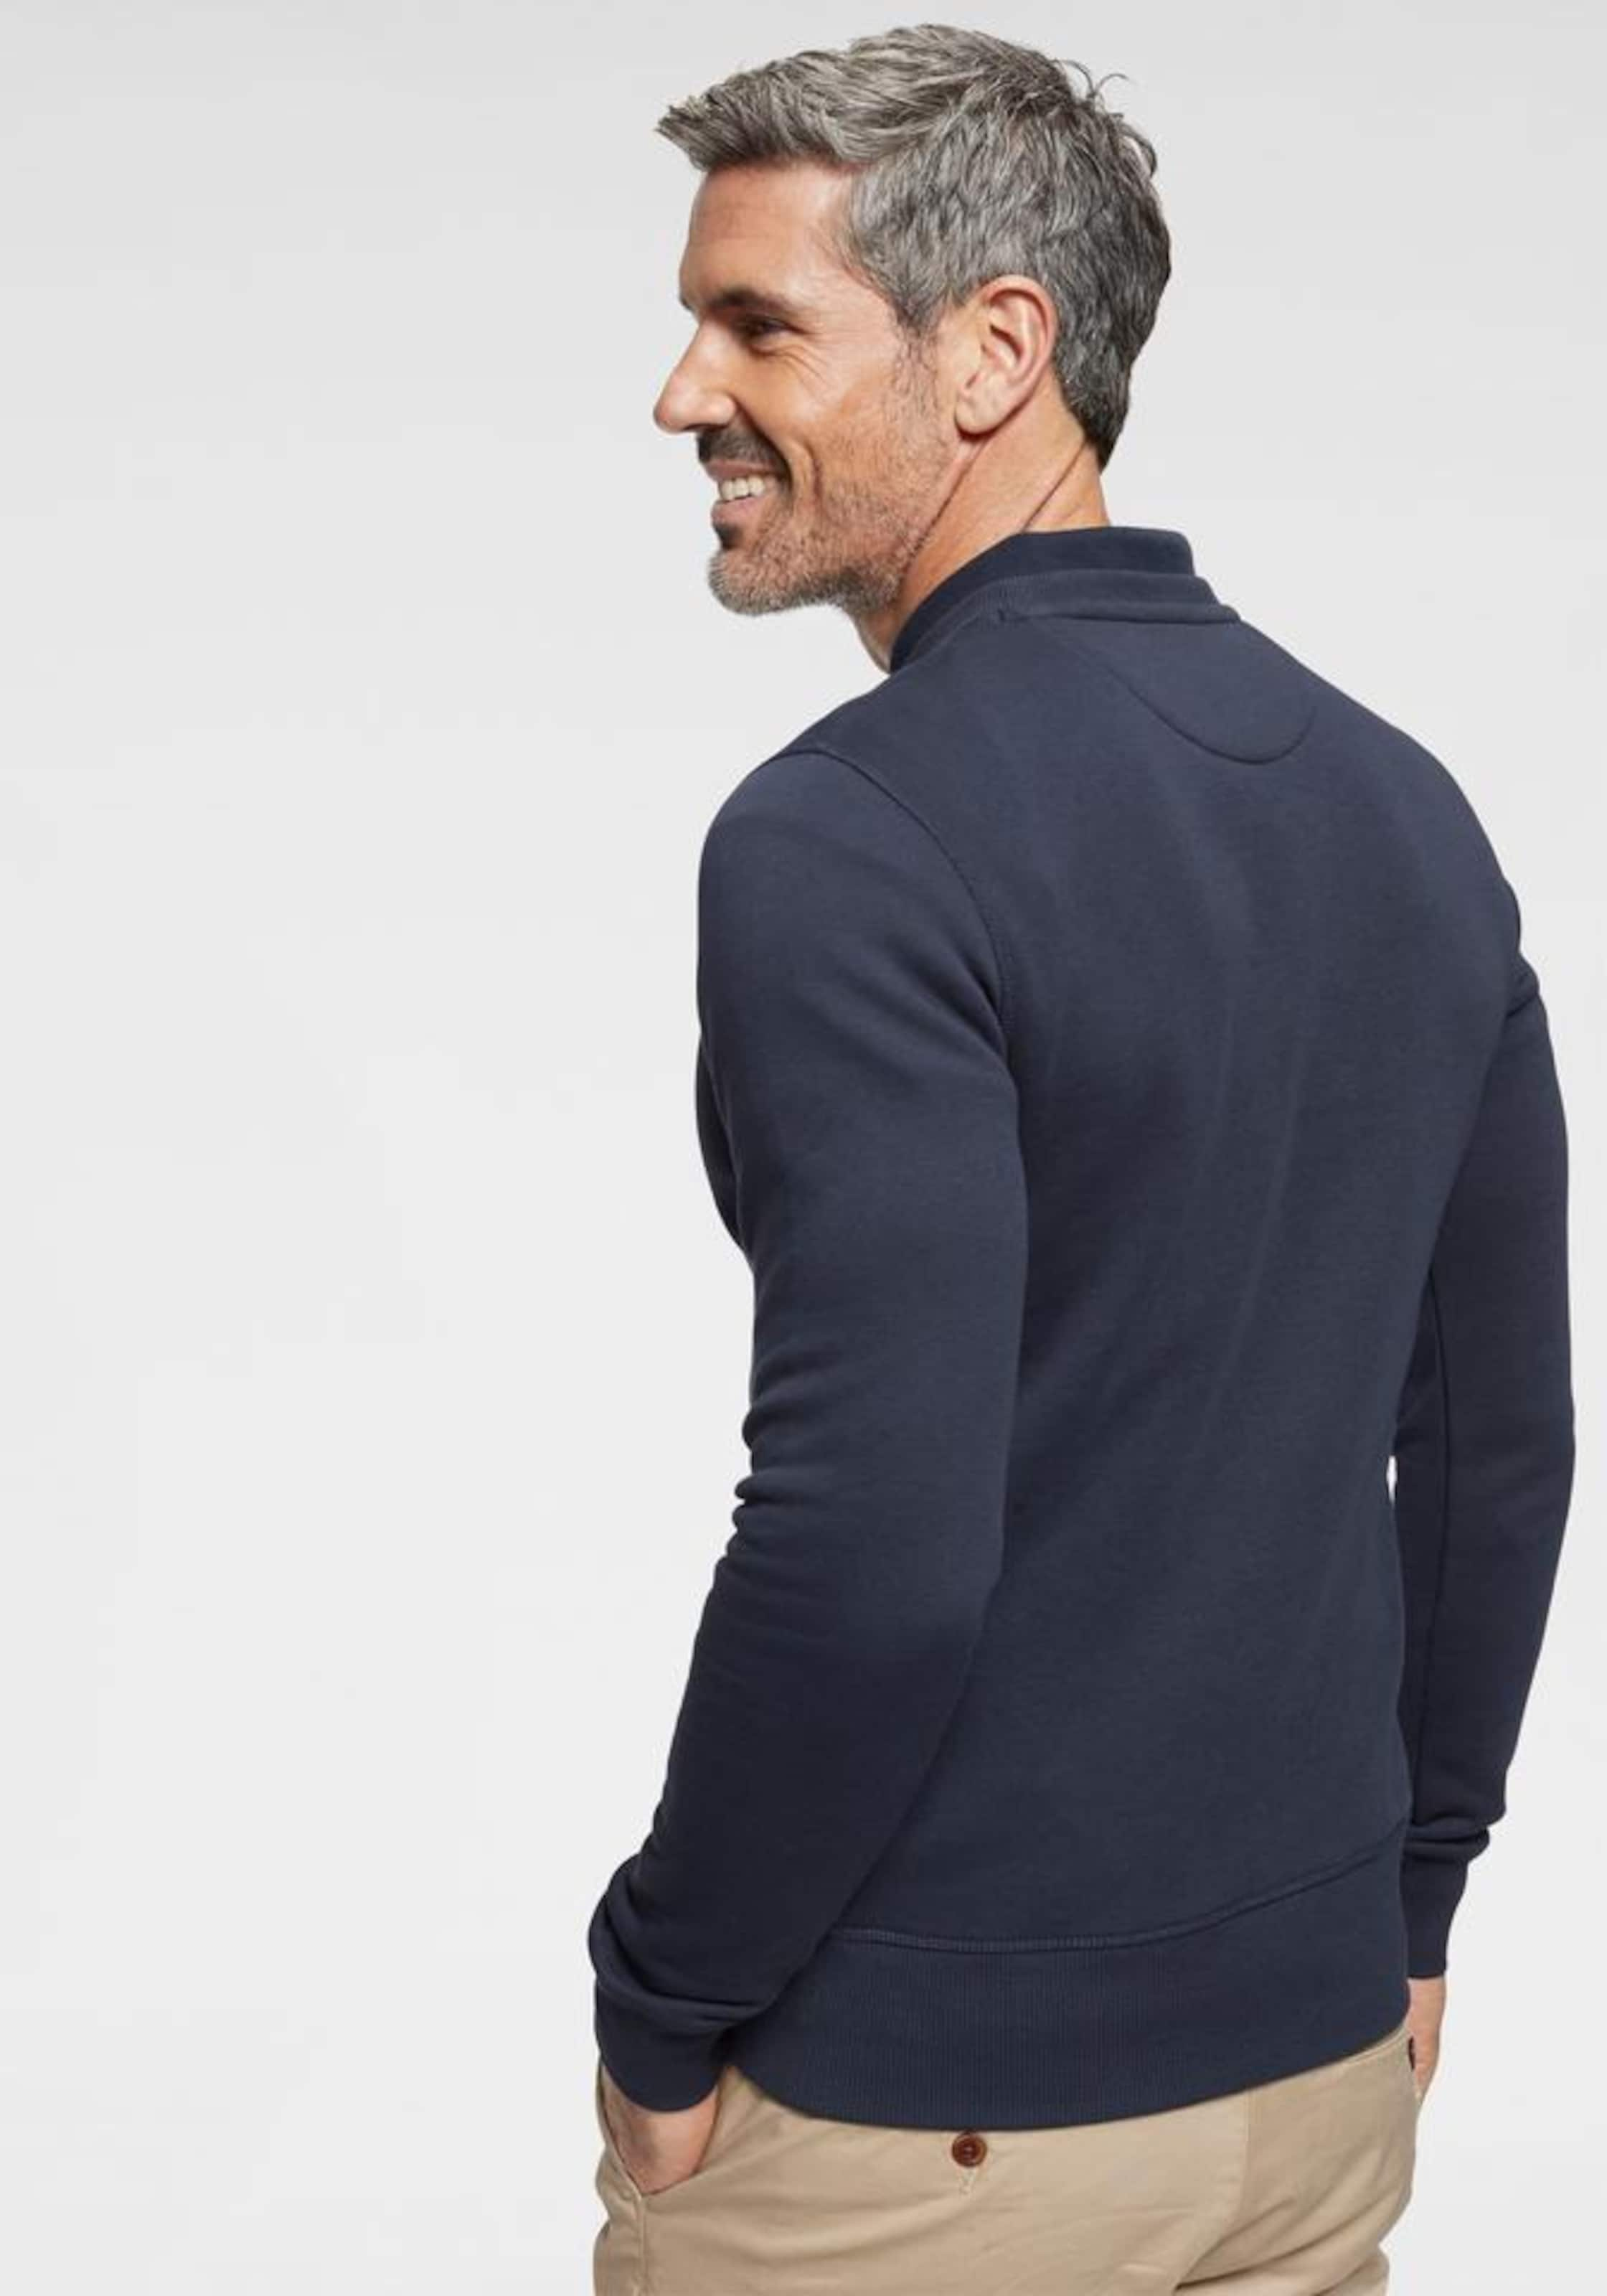 Navy Gant Sweatshirt 'original In C neck' mwO8vNn0